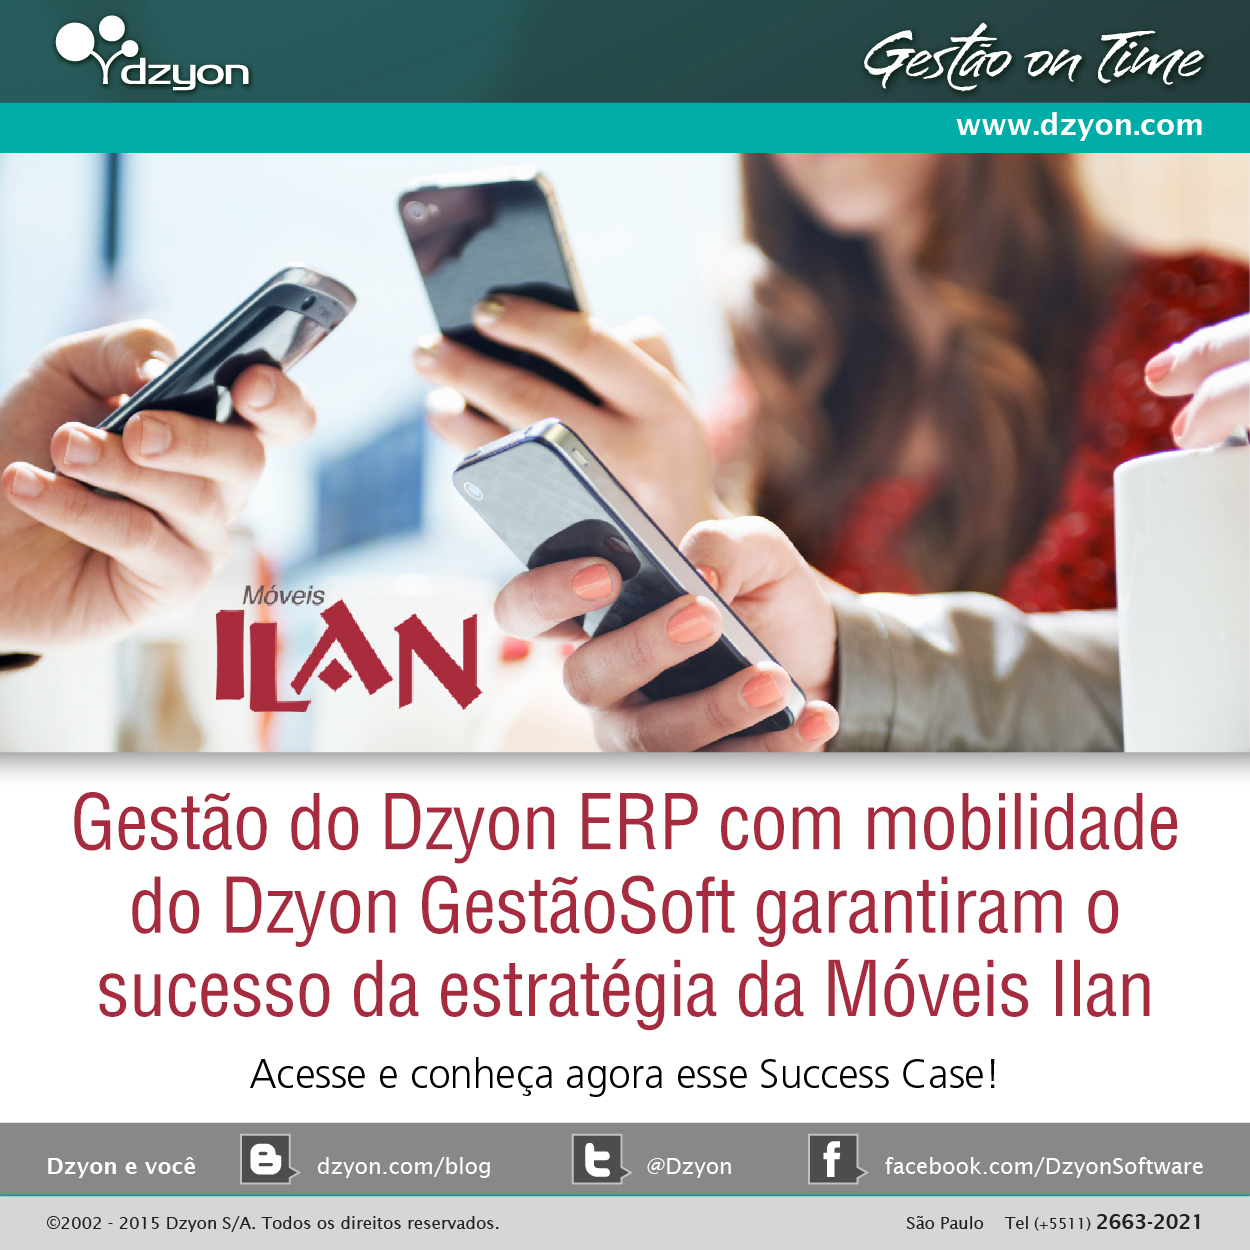 Dzyon_Post_Cases_Moveis_Ilan_set2015-01_mod